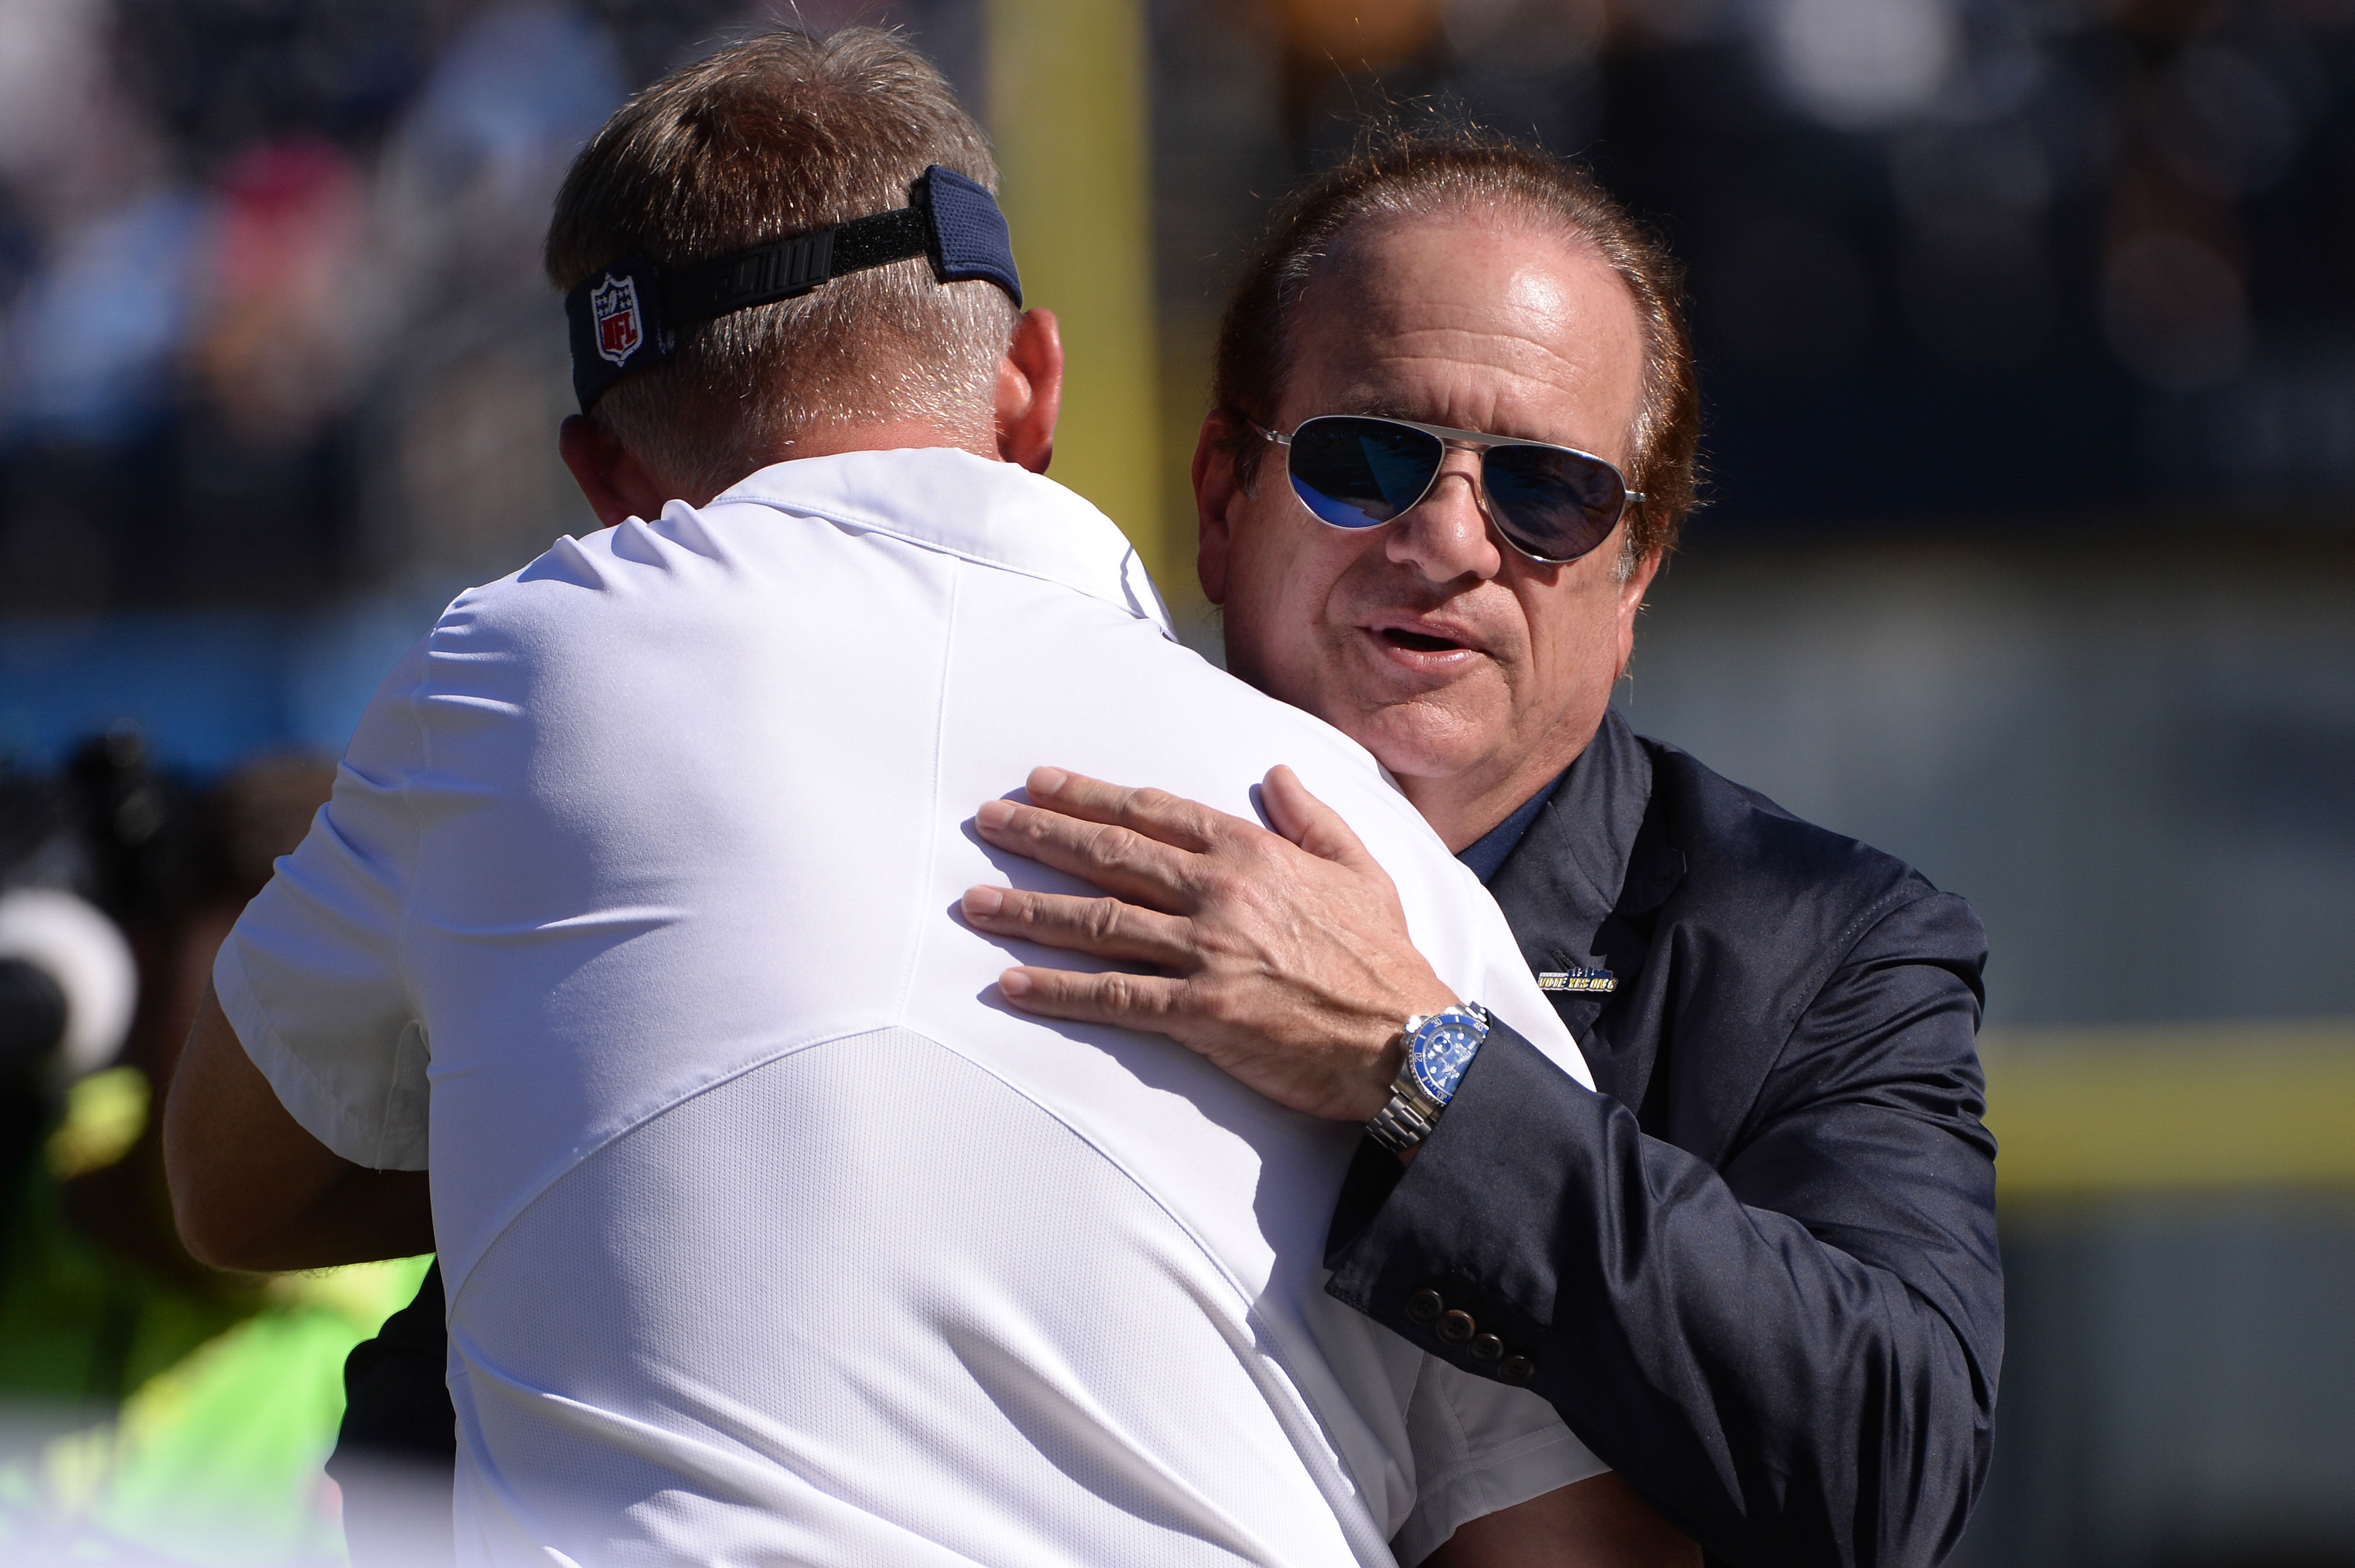 NFL: Tennessee Titans at San Diego Chargers